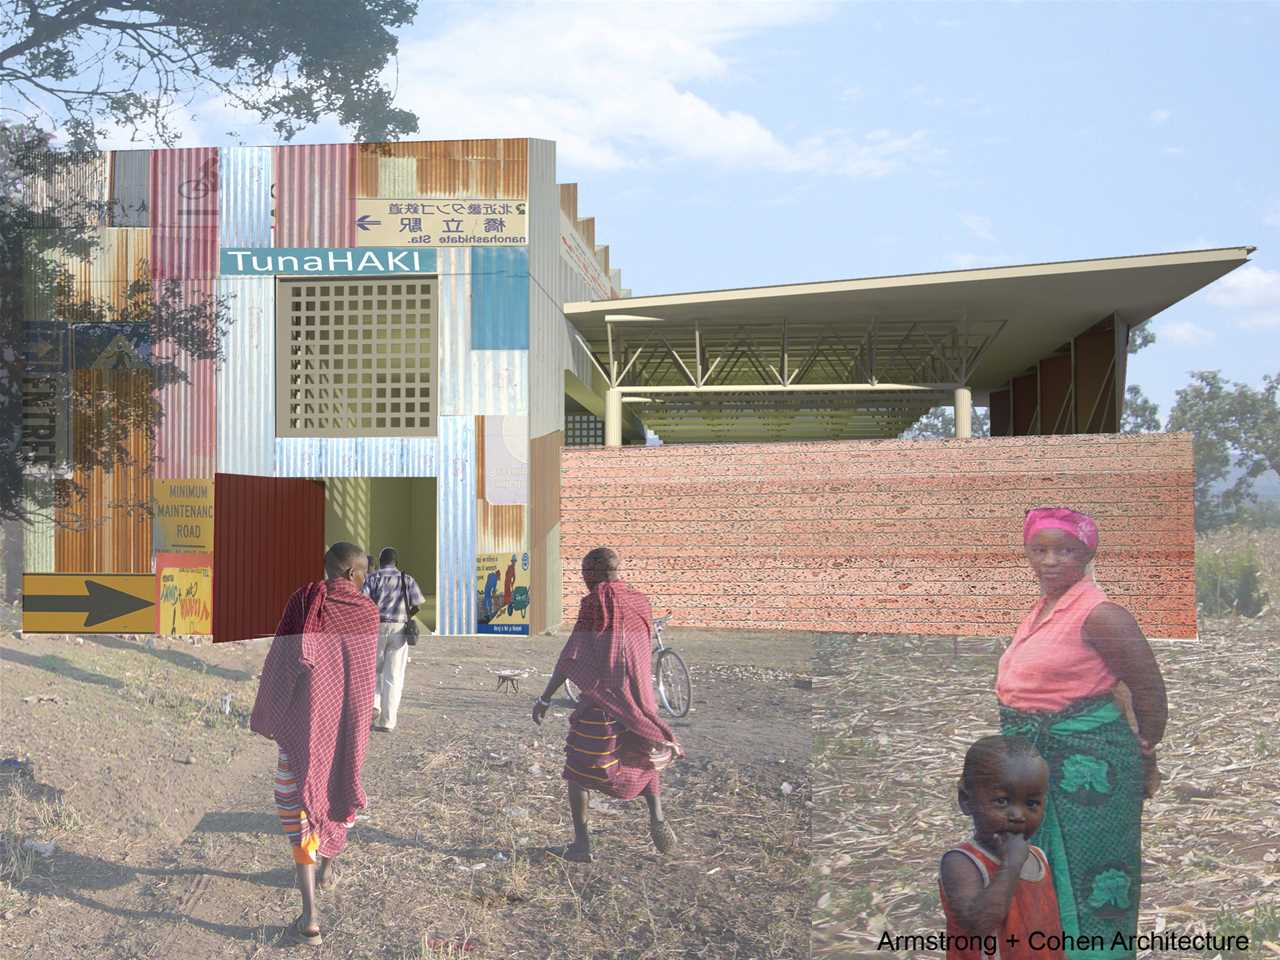 Holcim Awards Acknowledgement 2008 Africa Middle East: TunaHAKI integrated theater and orphanage, …